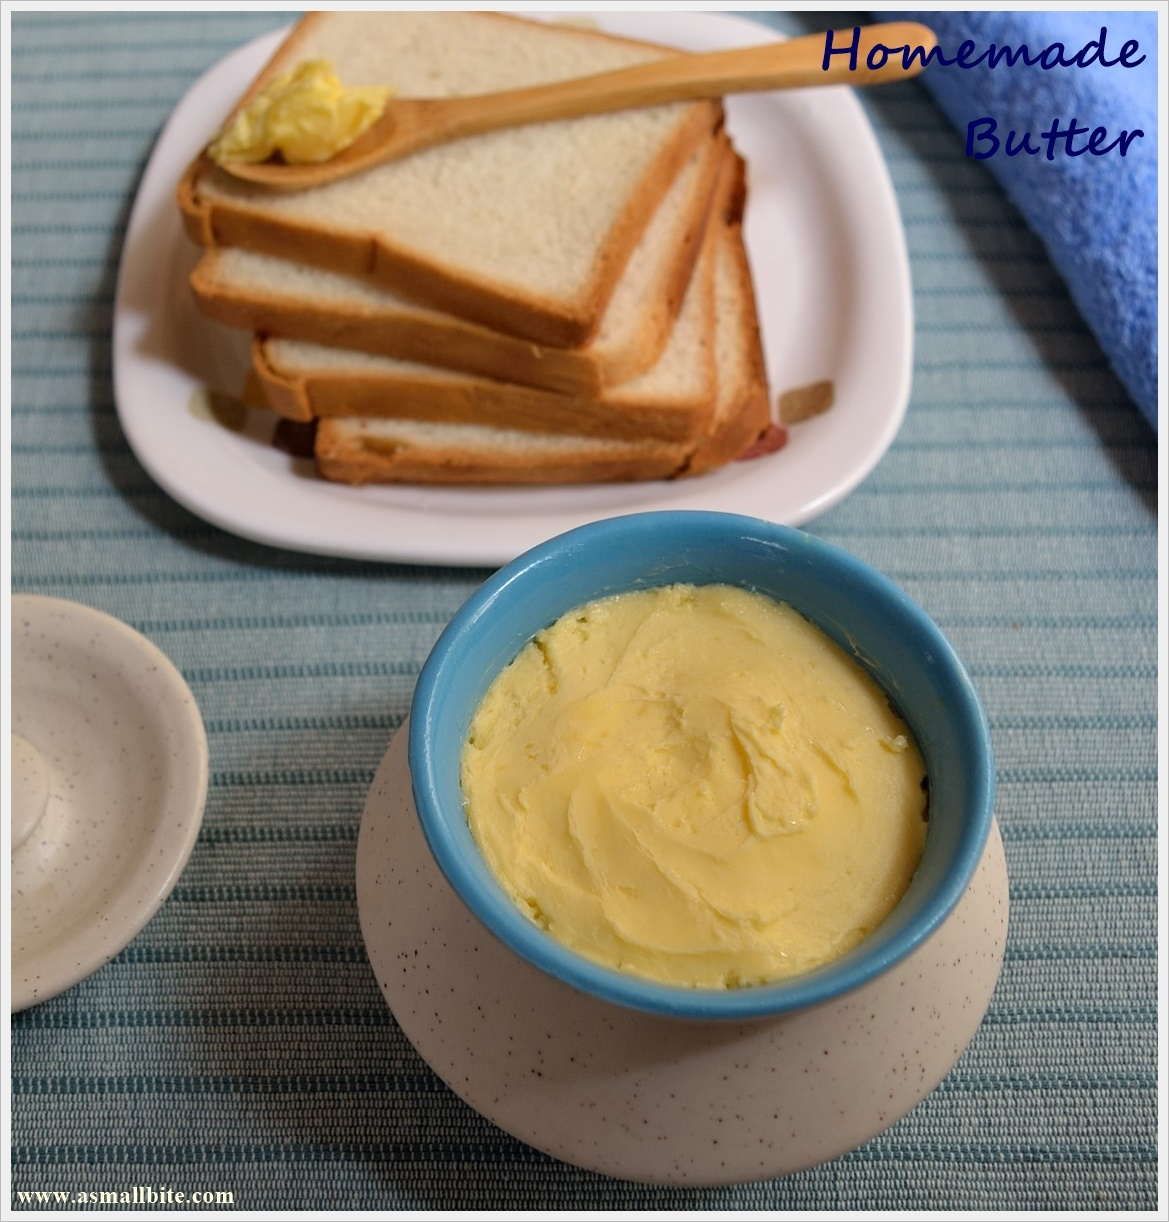 Homemade Butter 1